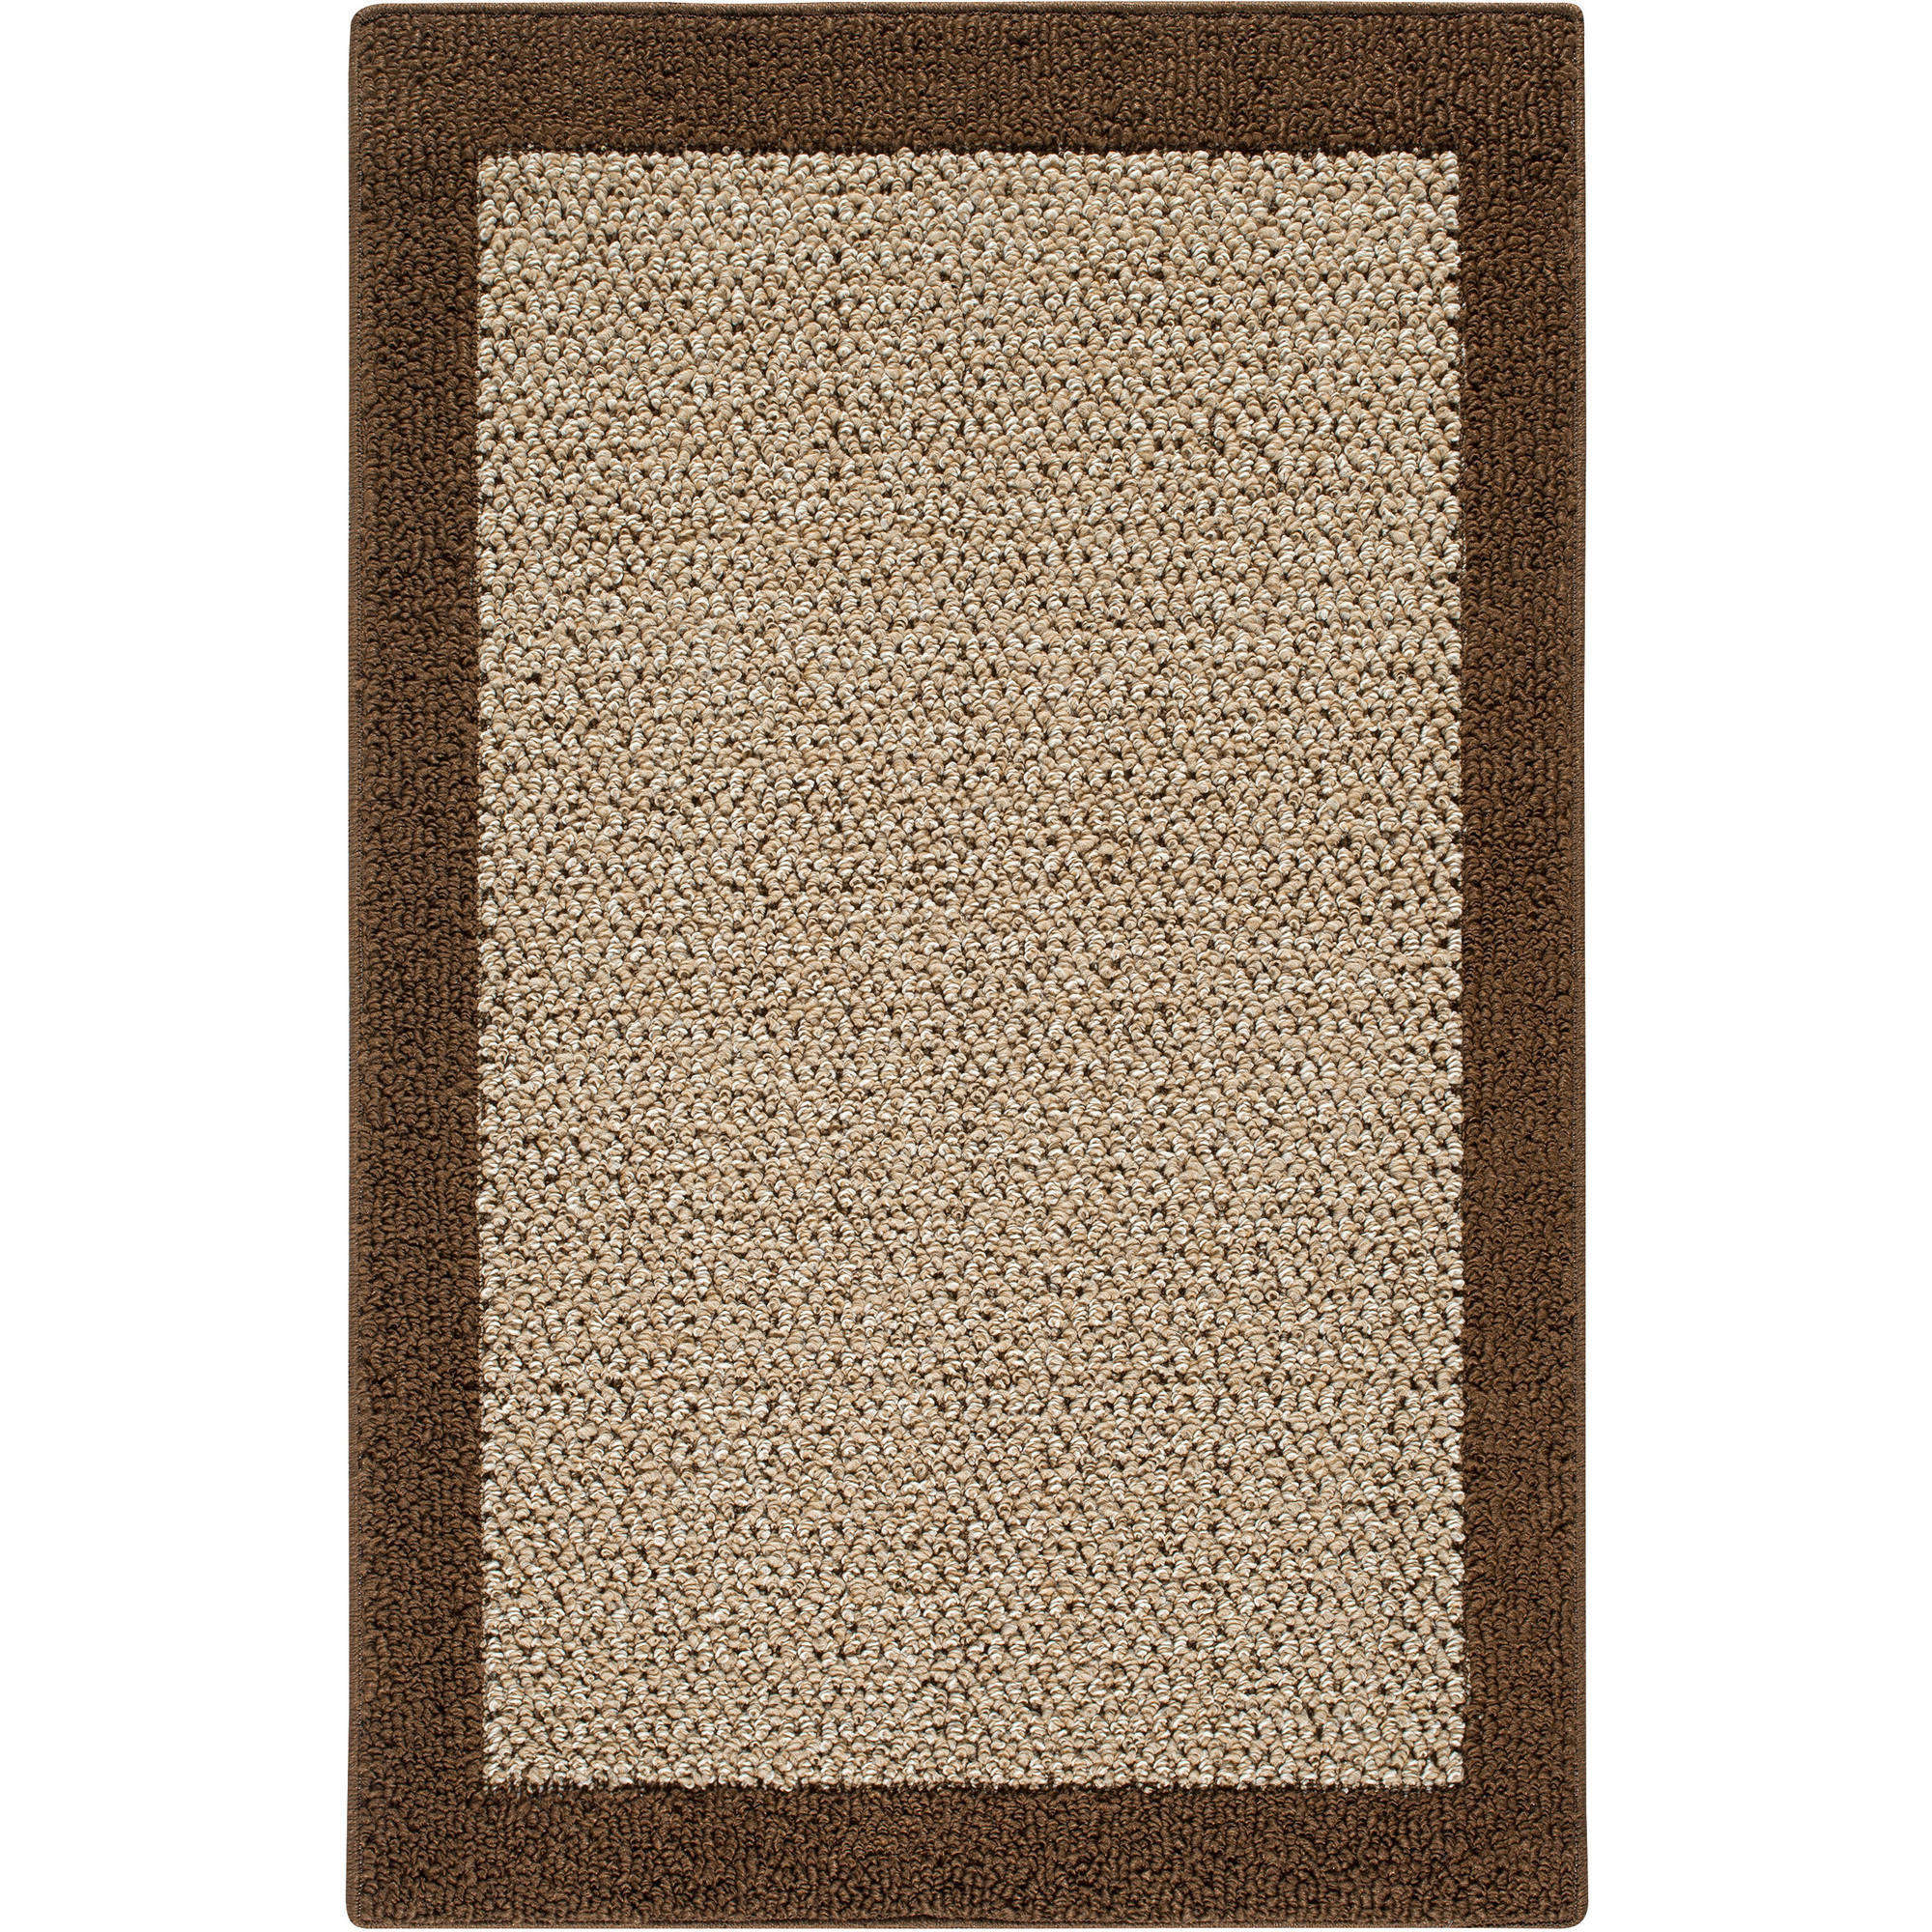 Cisale Sisal Rugs Used To Make A Percentage Of The Best Rugs In